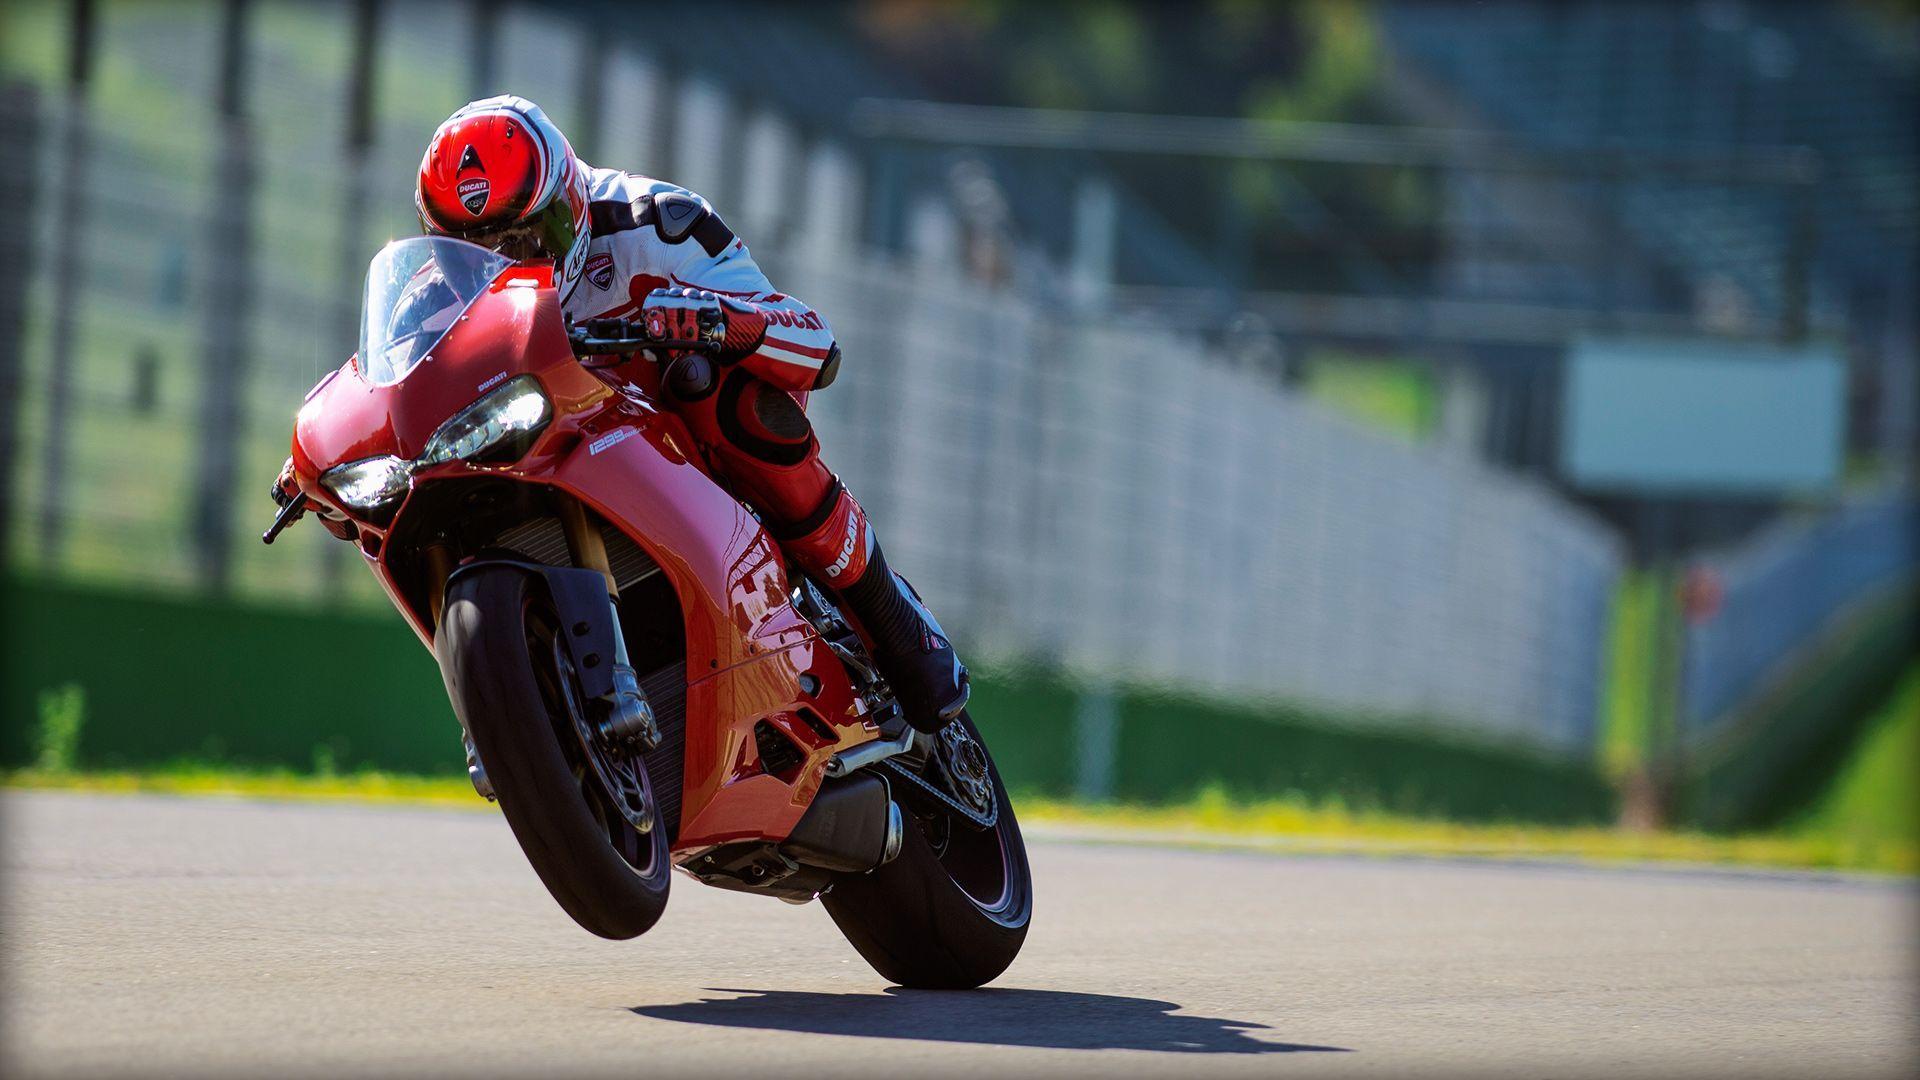 2015 Ducati 1299 Panigale S | 1299 Panigale S - Racing